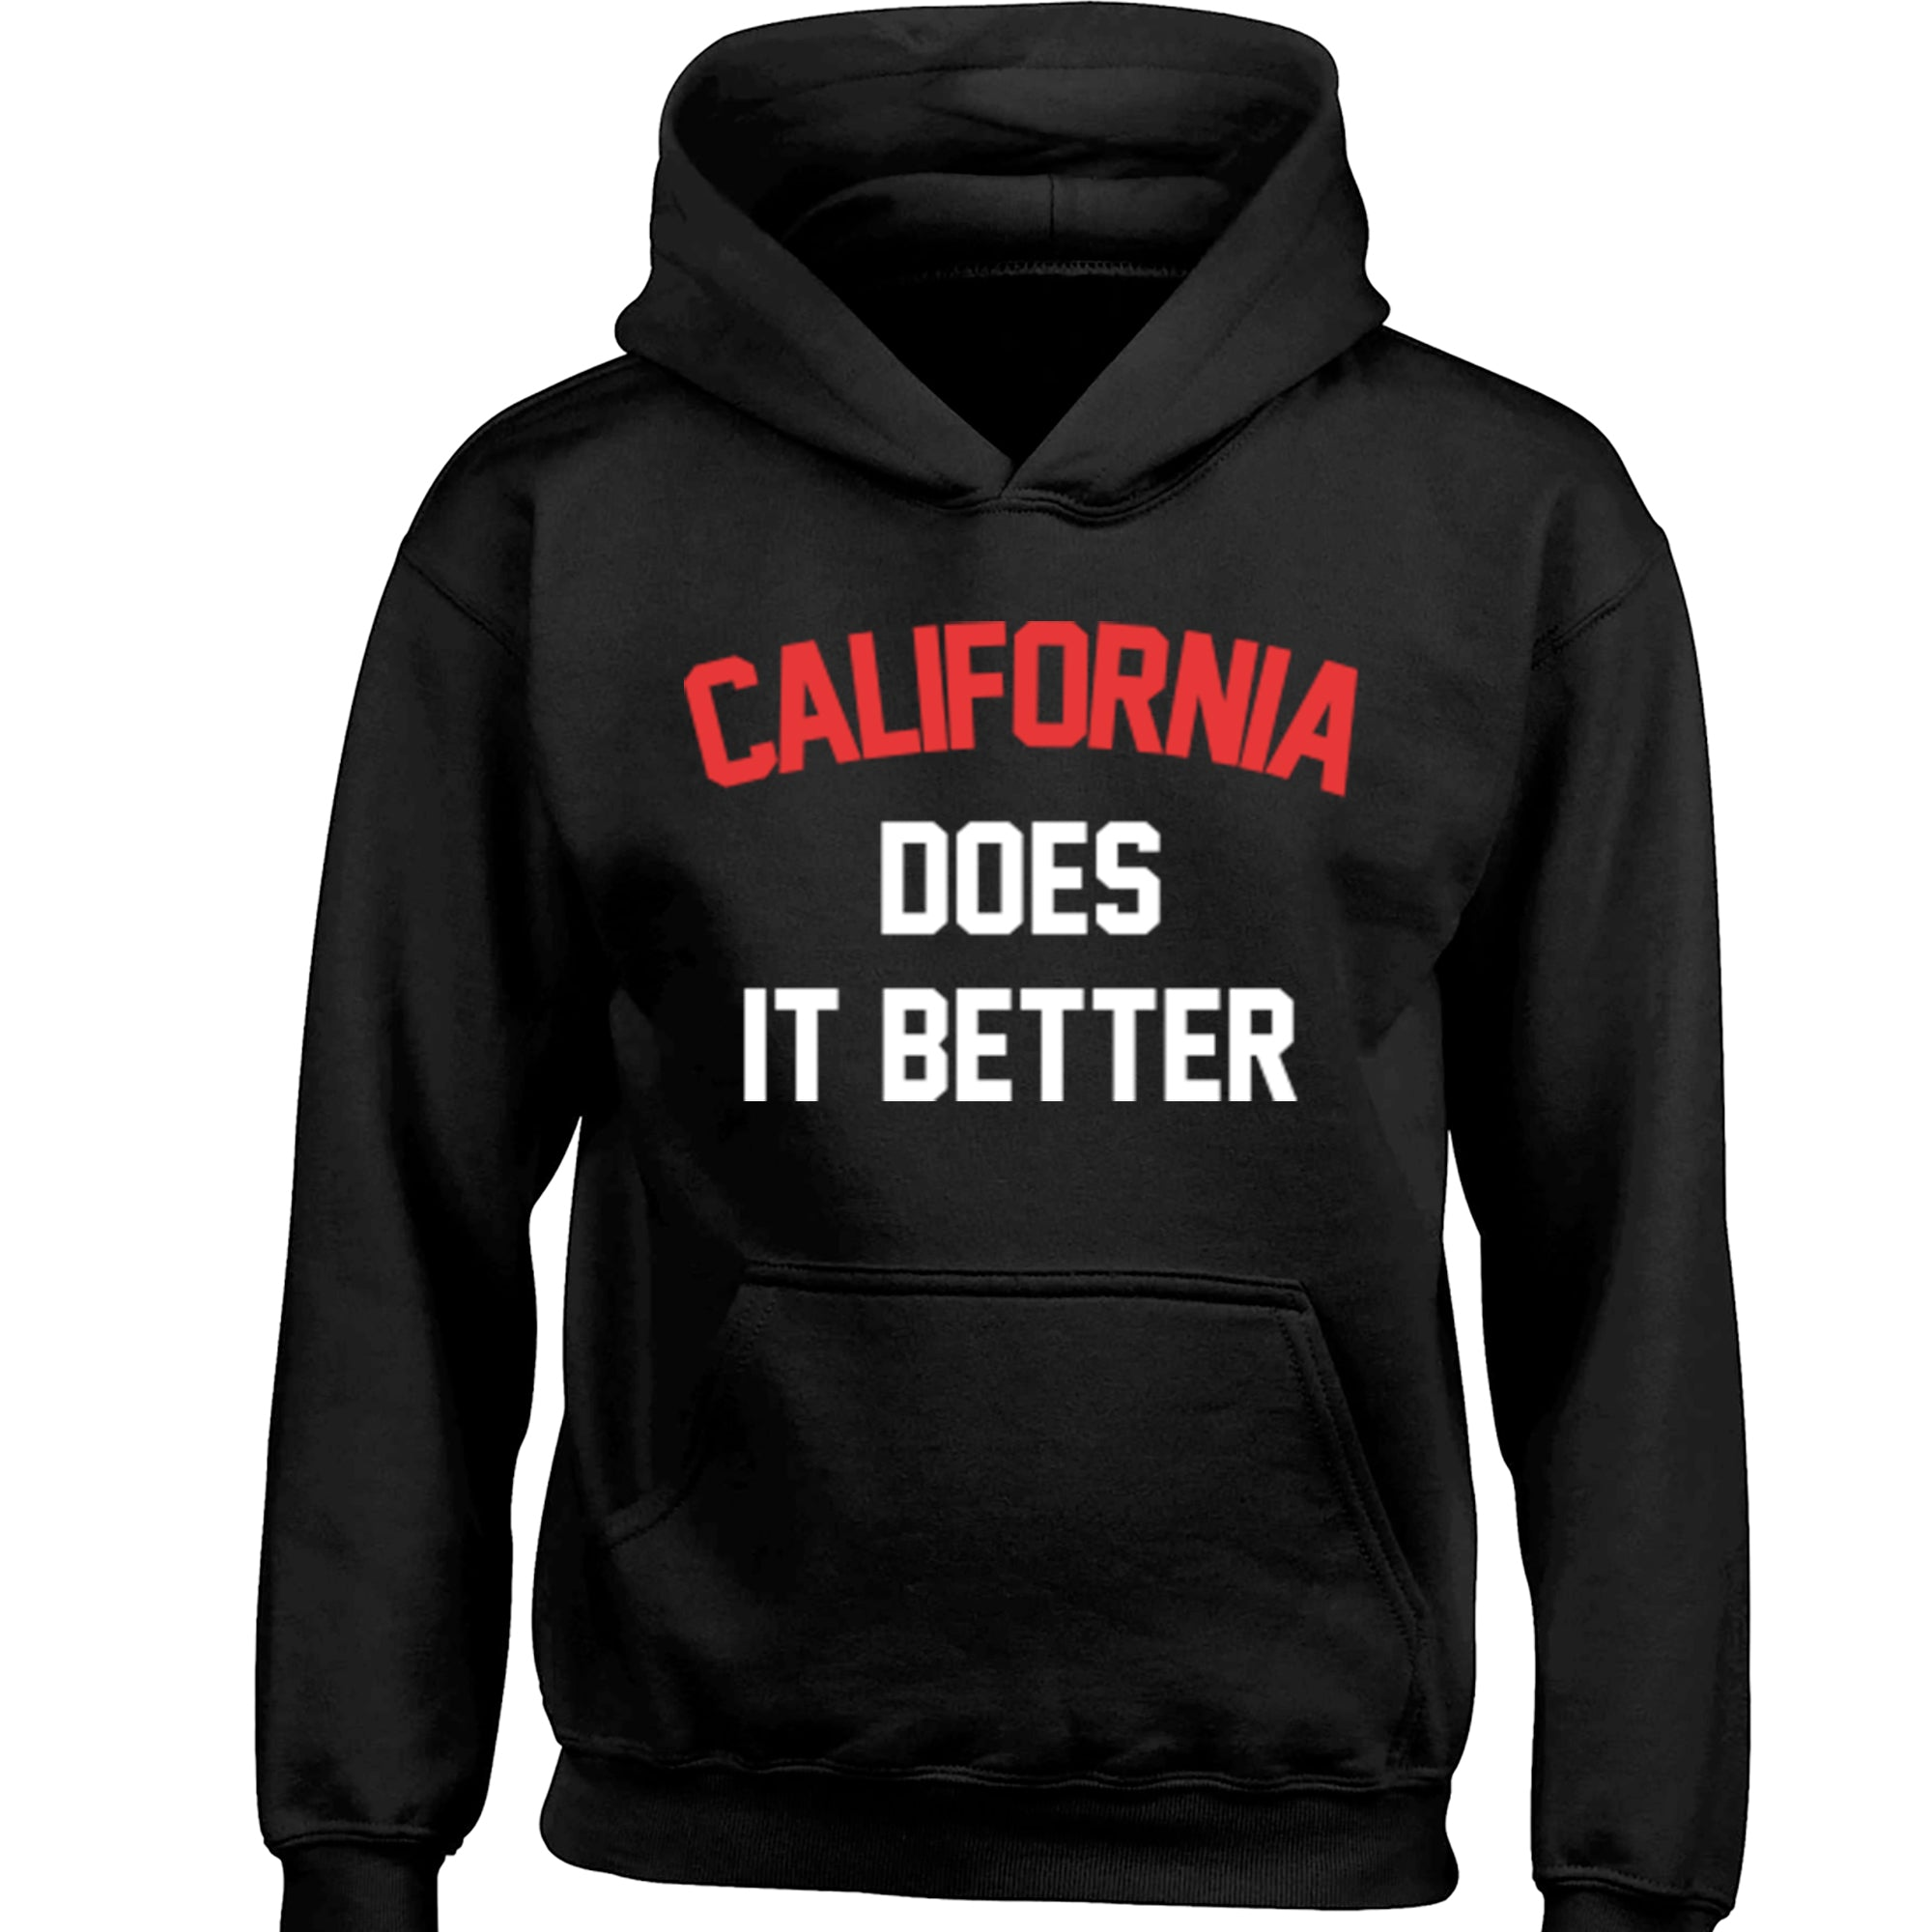 California Does It Better Childrens Ages 3/4-12/14 Unisex Hoodie K1146 - Illustrated Identity Ltd.